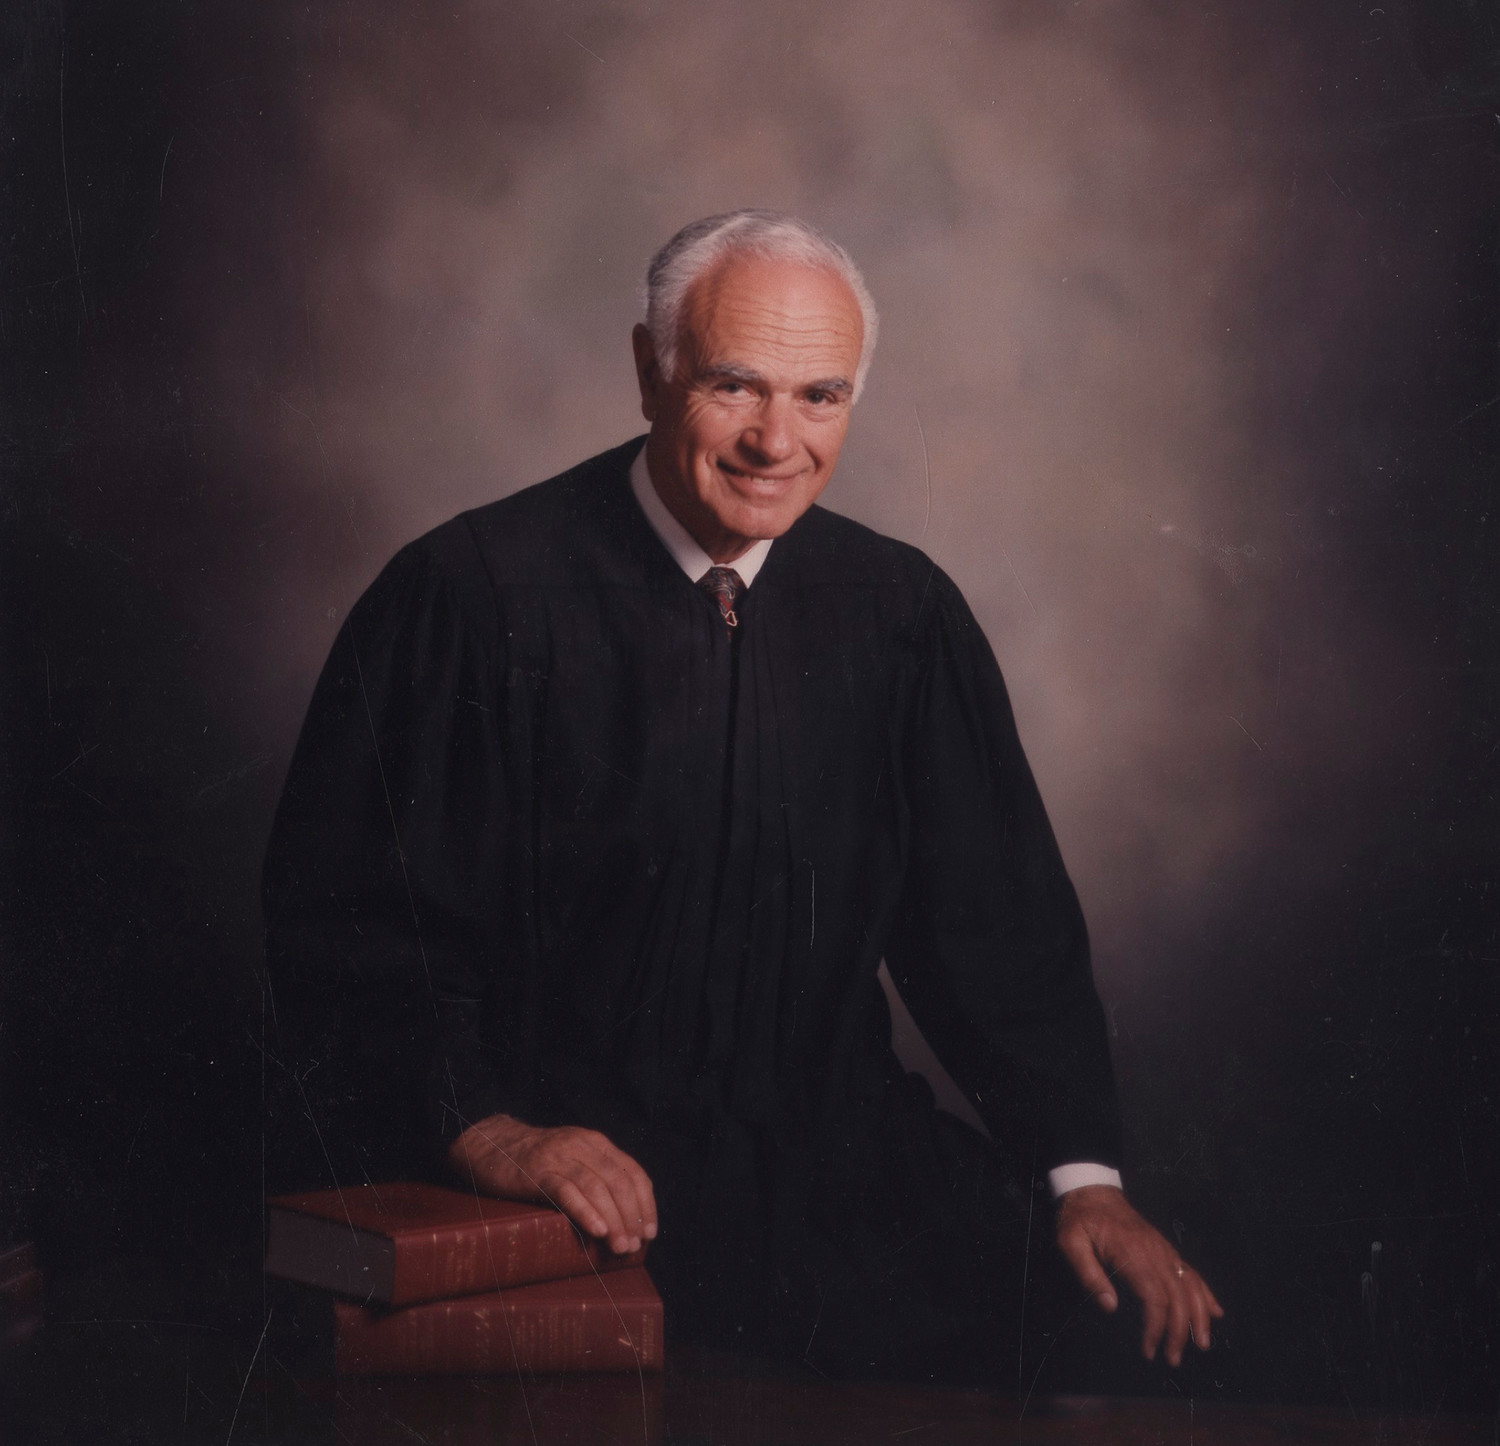 Jack Mackston served as a Long Beach City Court judge beginning in 1972 and was elected Nassau County Criminal Court judge in 1988.